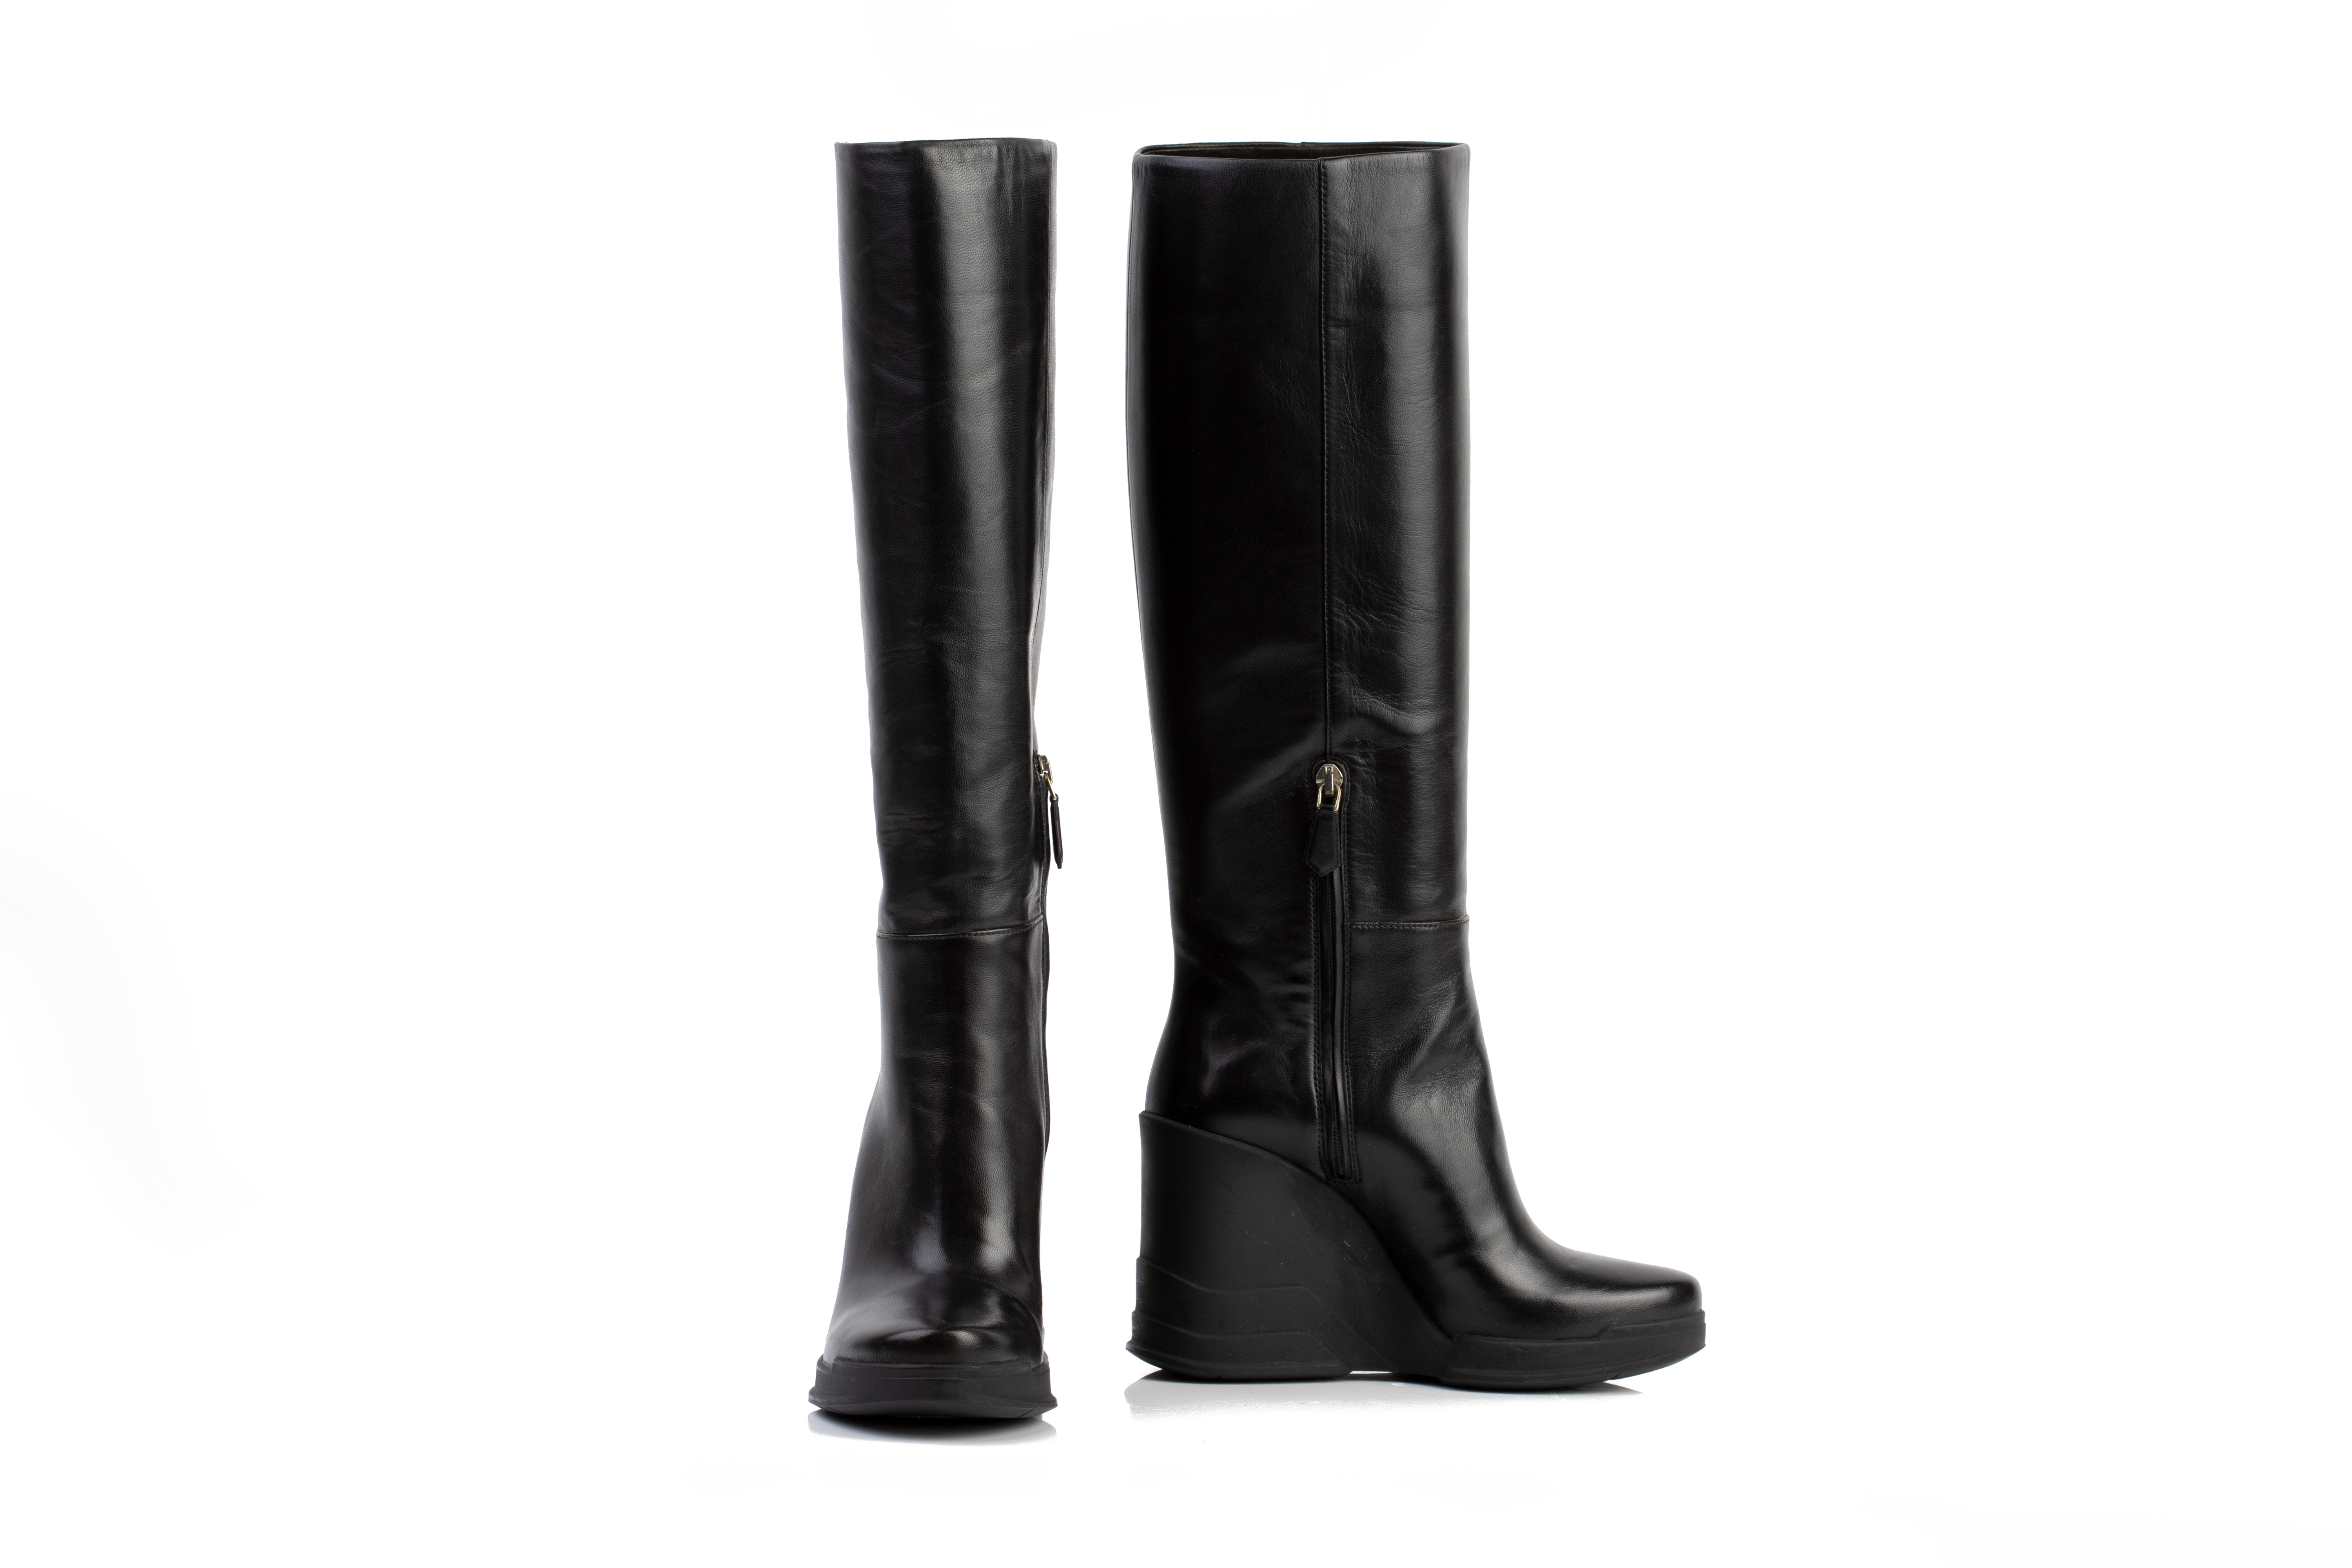 A PAIR OF PRADA BLACK LEATHER WEDGE BOOTS EU36 - Image 3 of 6